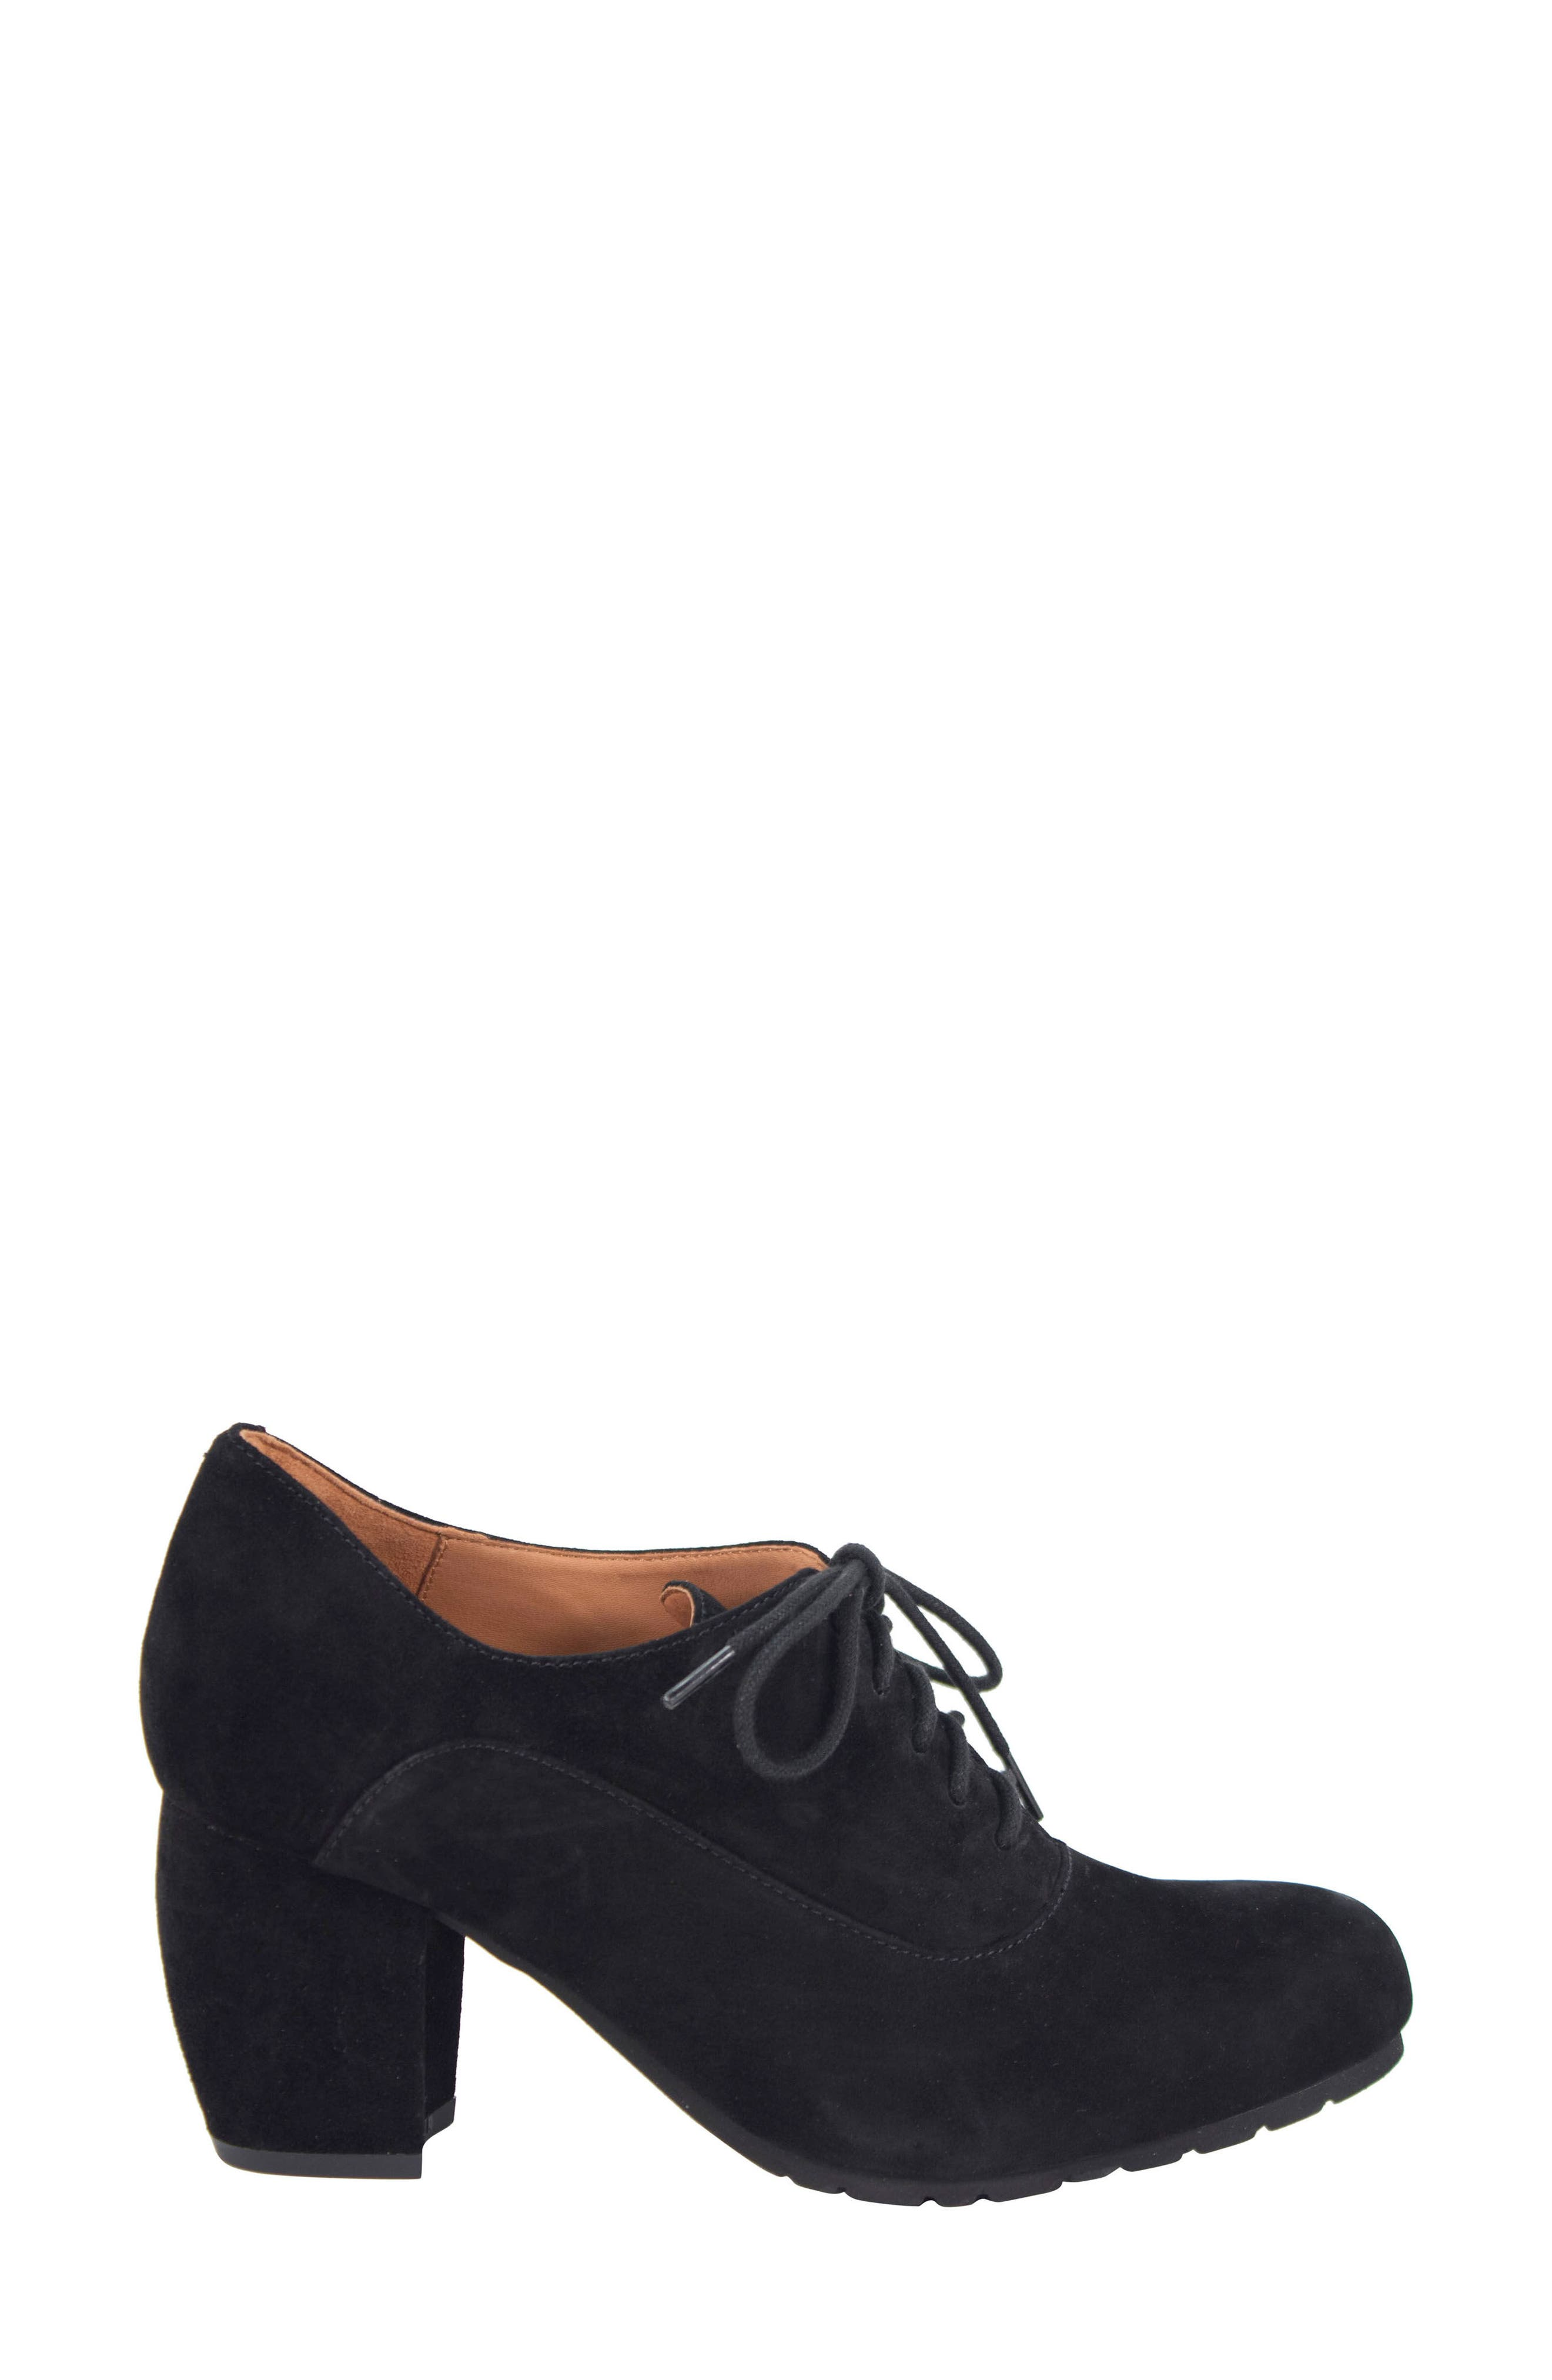 Alternate Image 3  - L'Amour des Pieds Pardoe Lace-Up Bootie (Women)